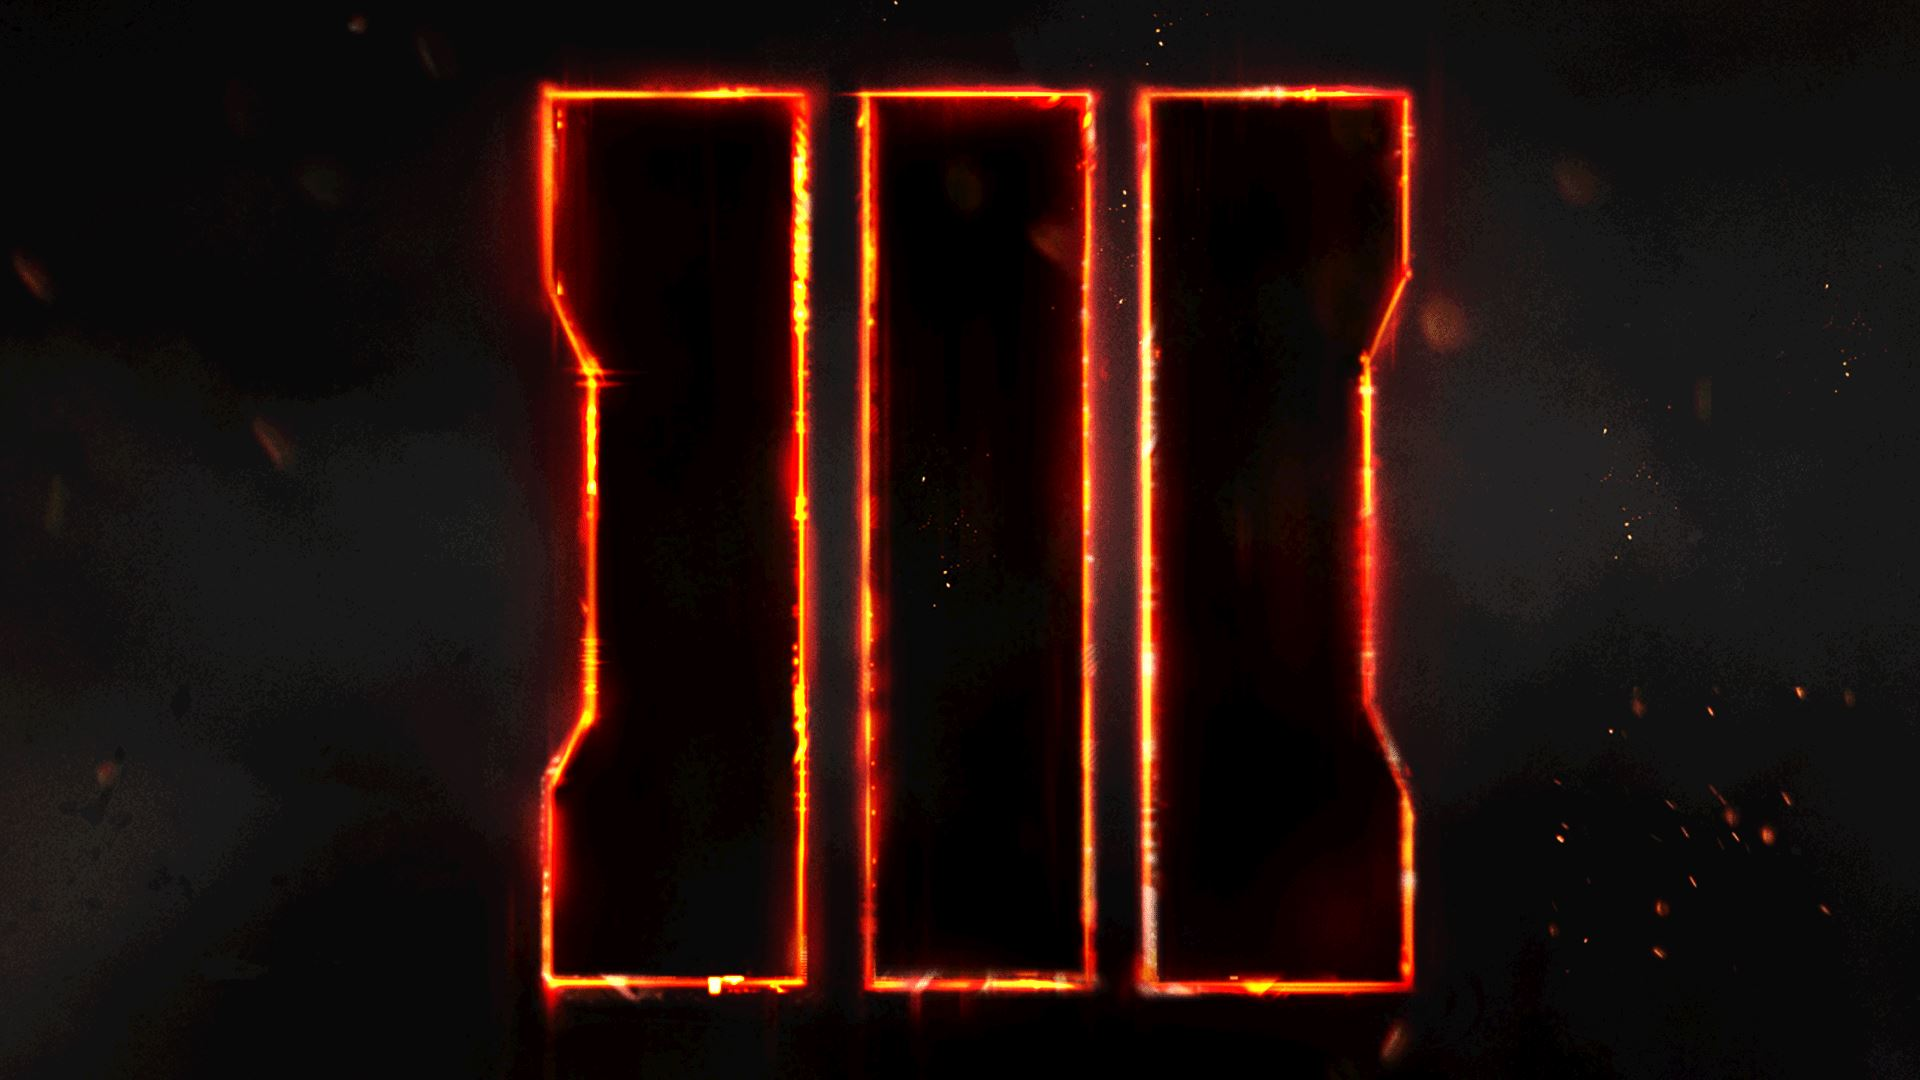 Call of Duty Black Ops III Digital Deluxe Edition 1920x1080